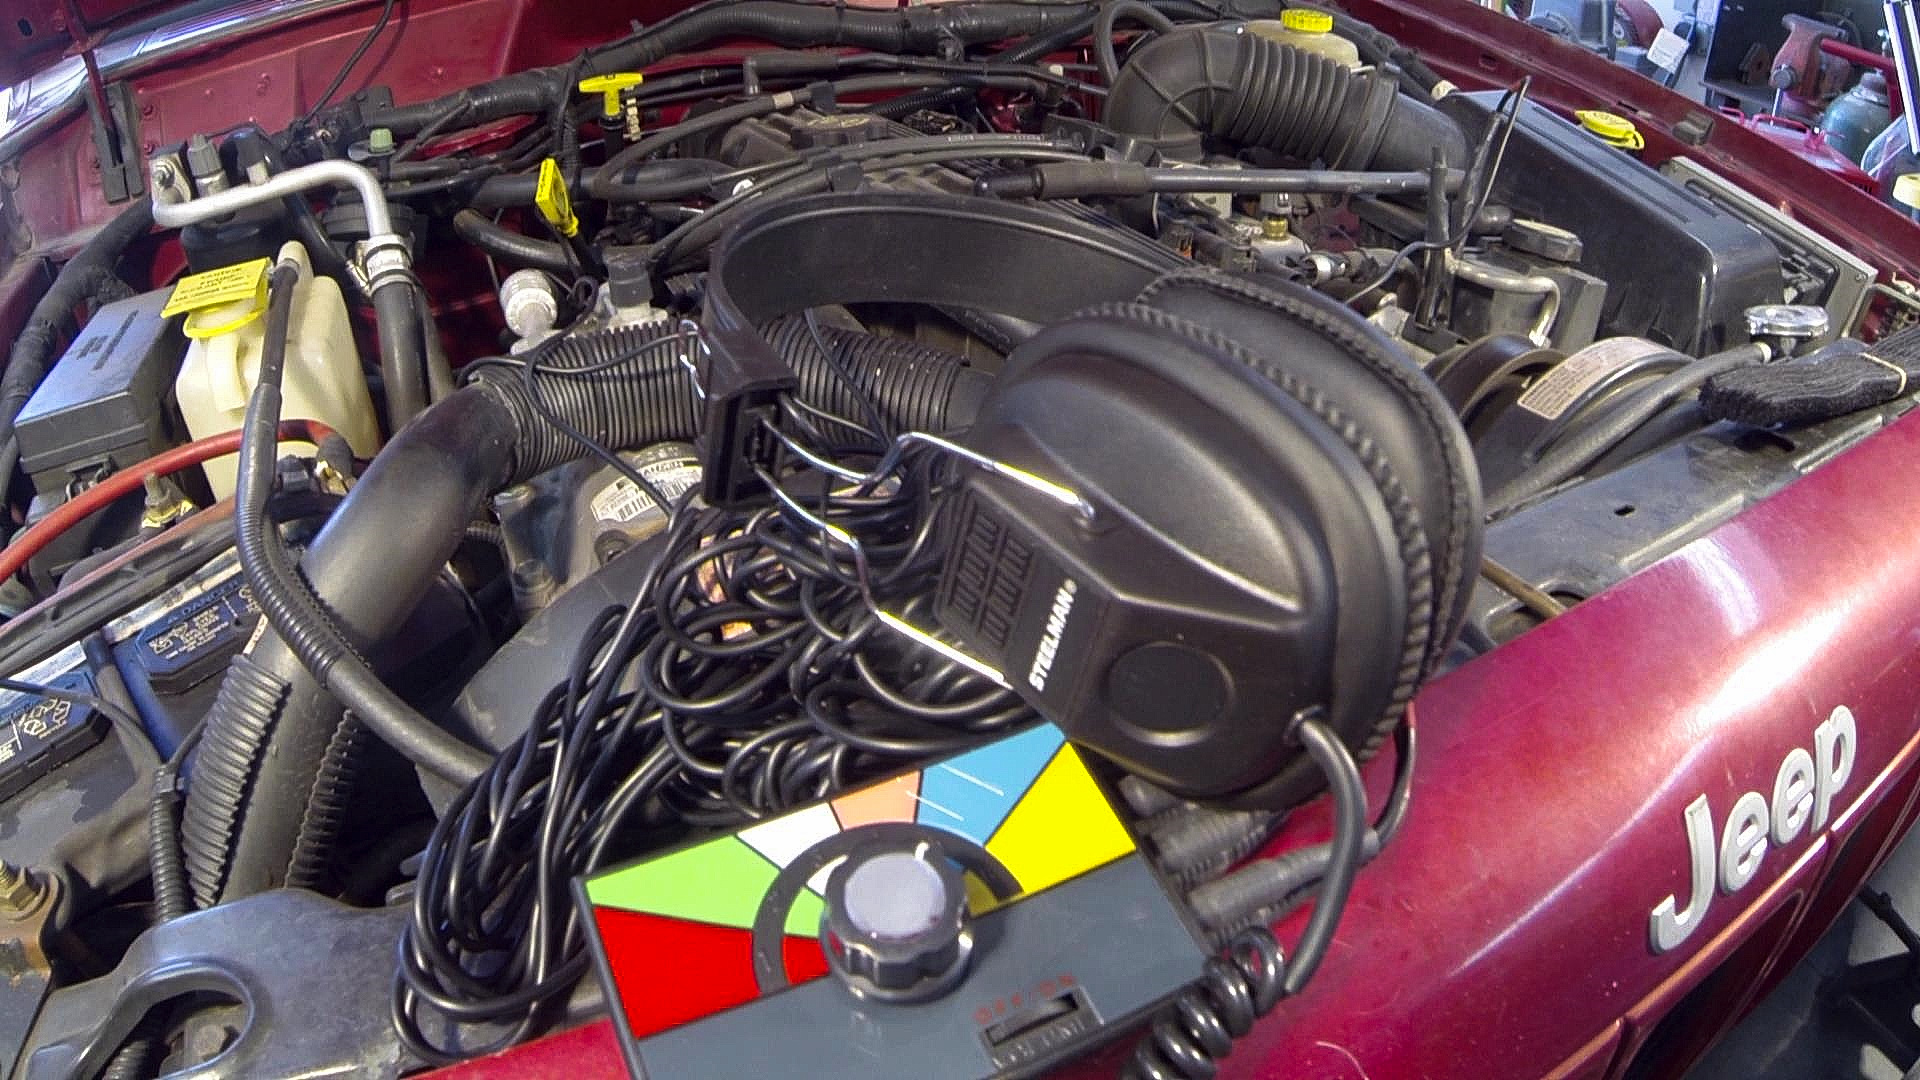 How-to: Diagnose an Engine Noise or Knock